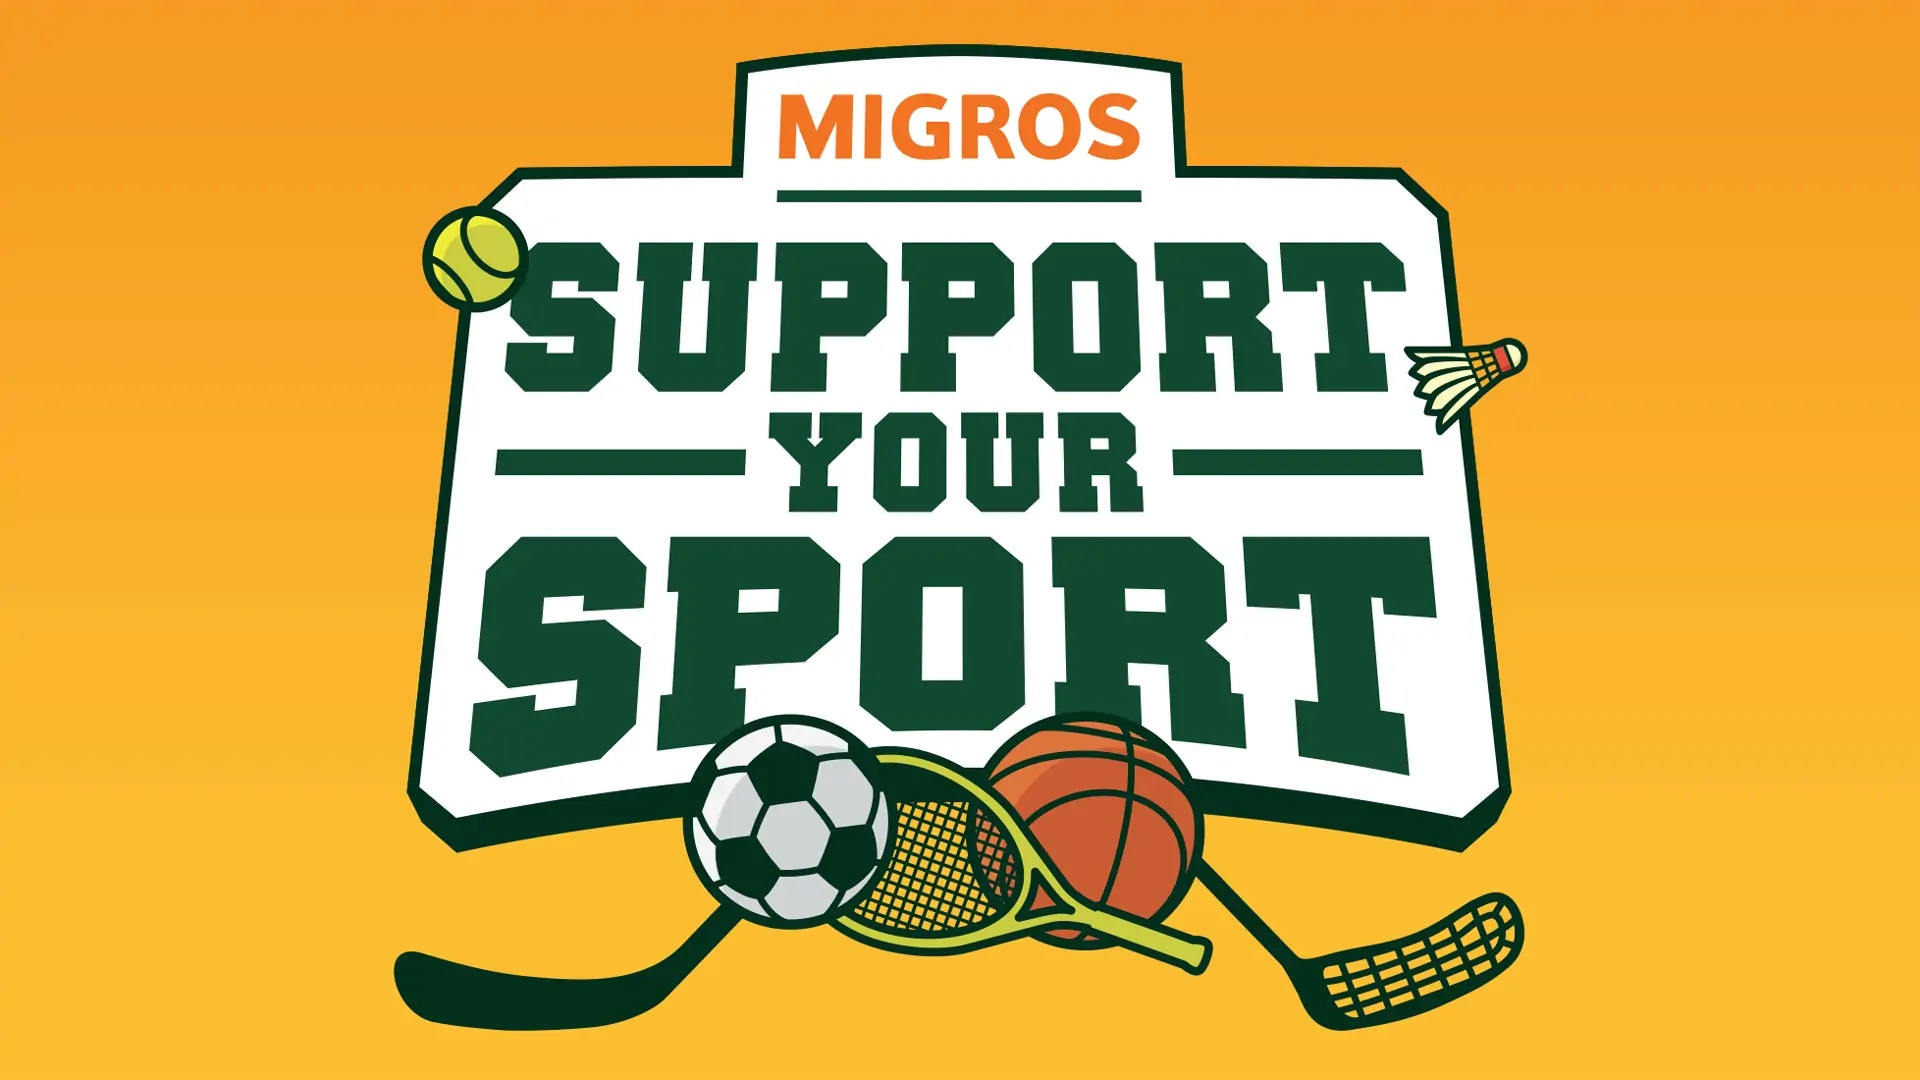 Support Your Sport Migros